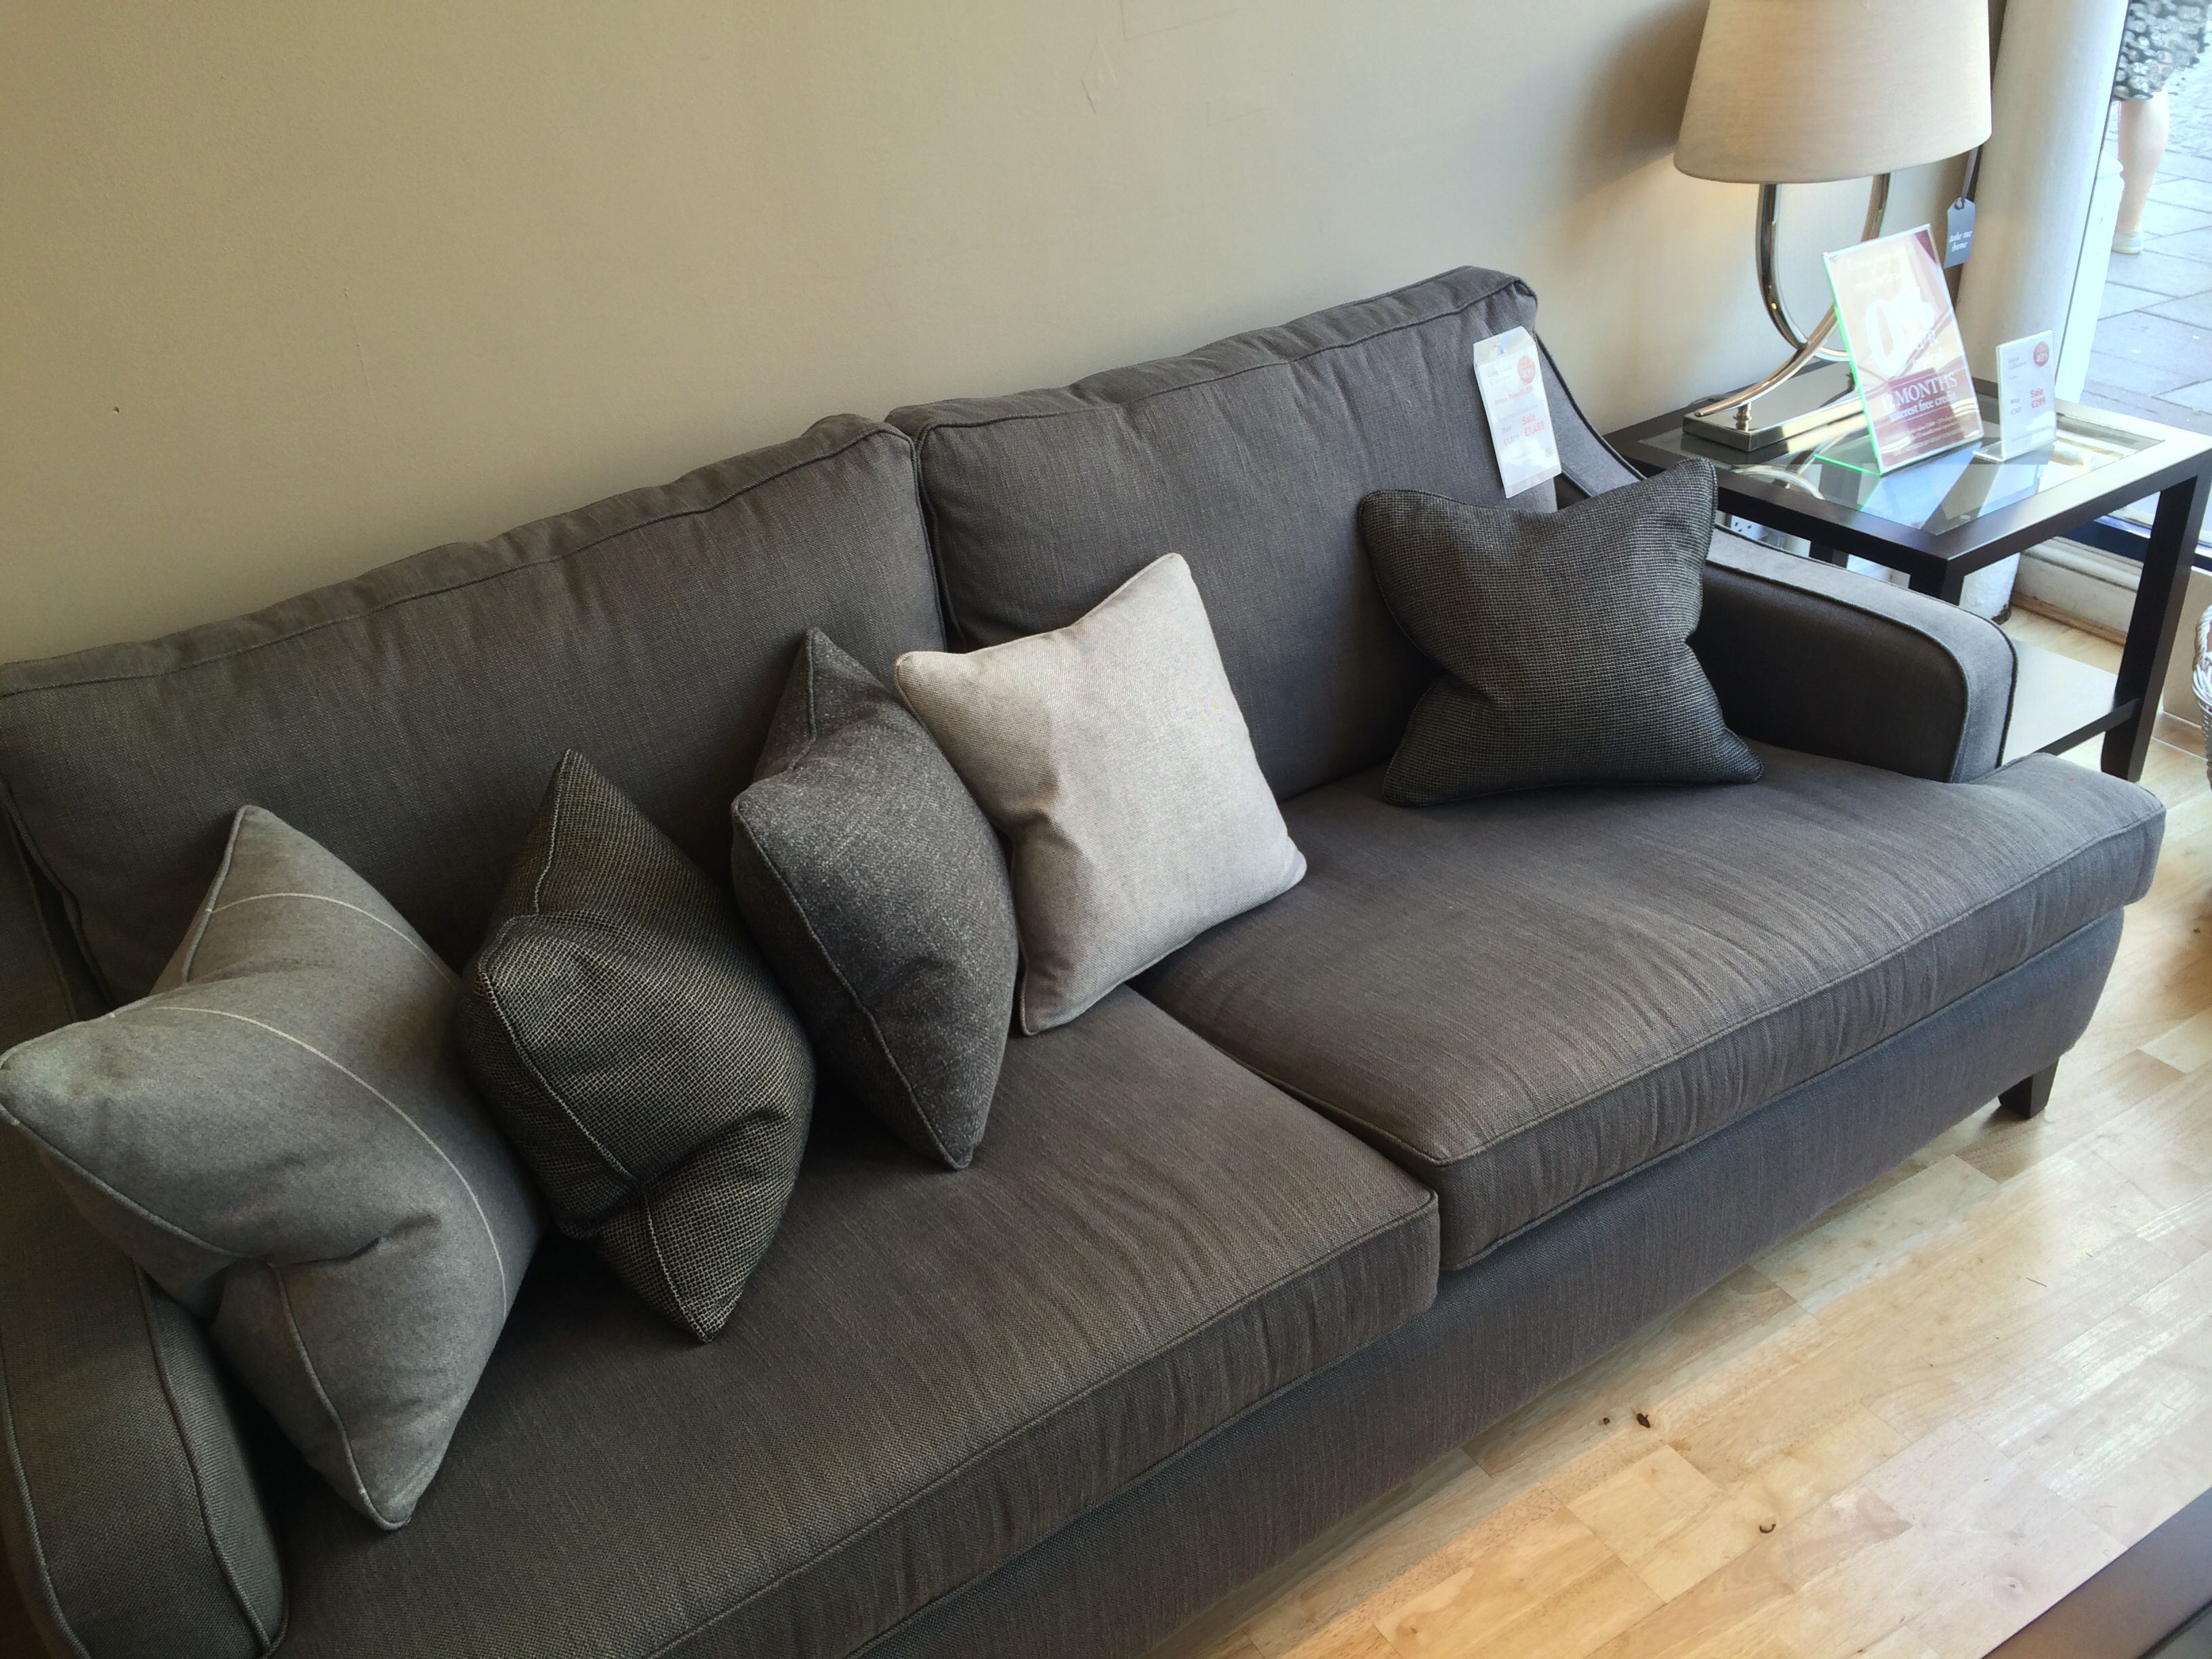 Sofa in multiyork Furniture